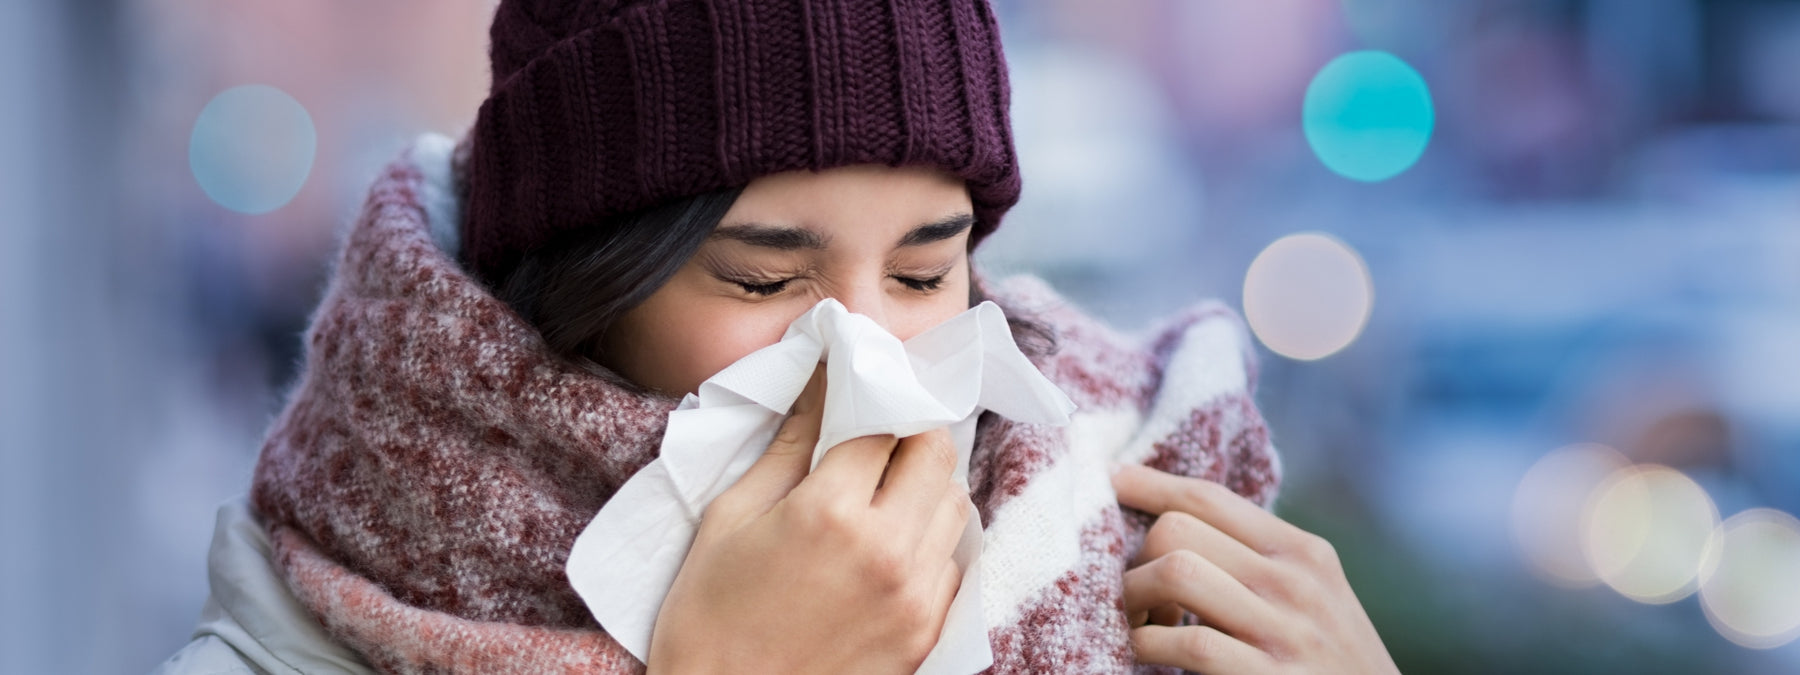 7 Tips to Stay Healthy During Cold and Flu Season